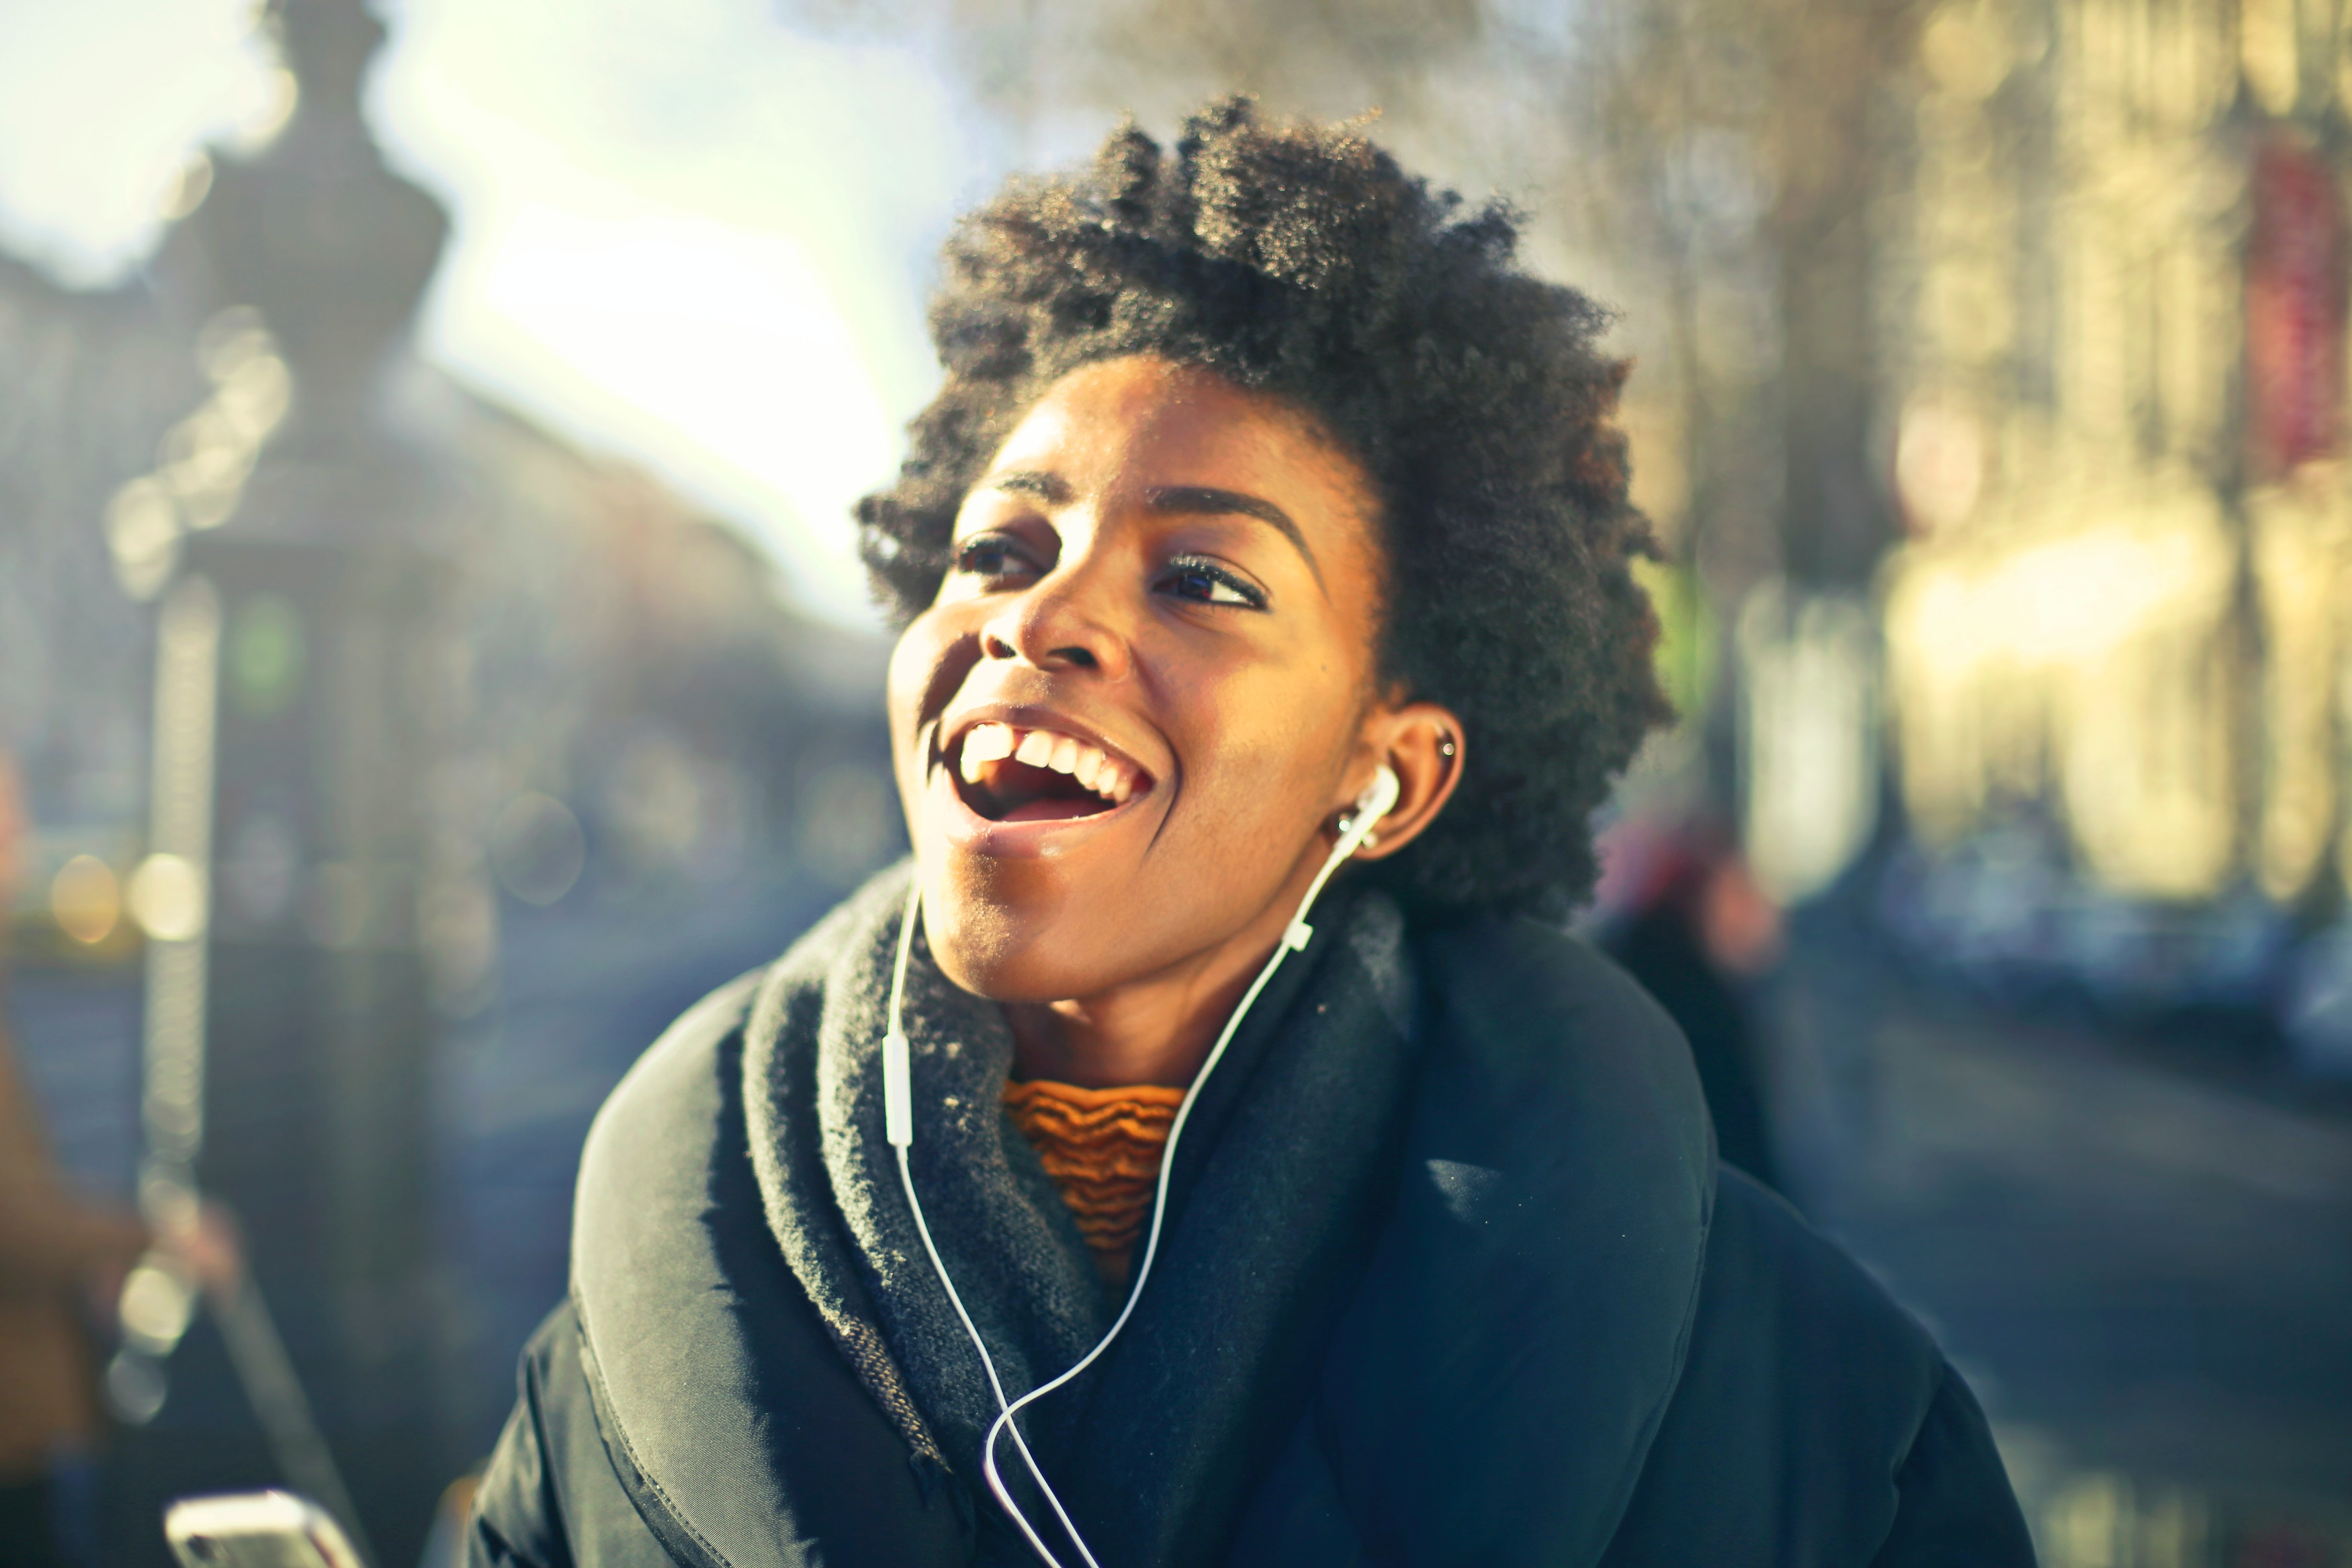 Close Up Photo Of A Woman Listening To Music 183 Free Stock